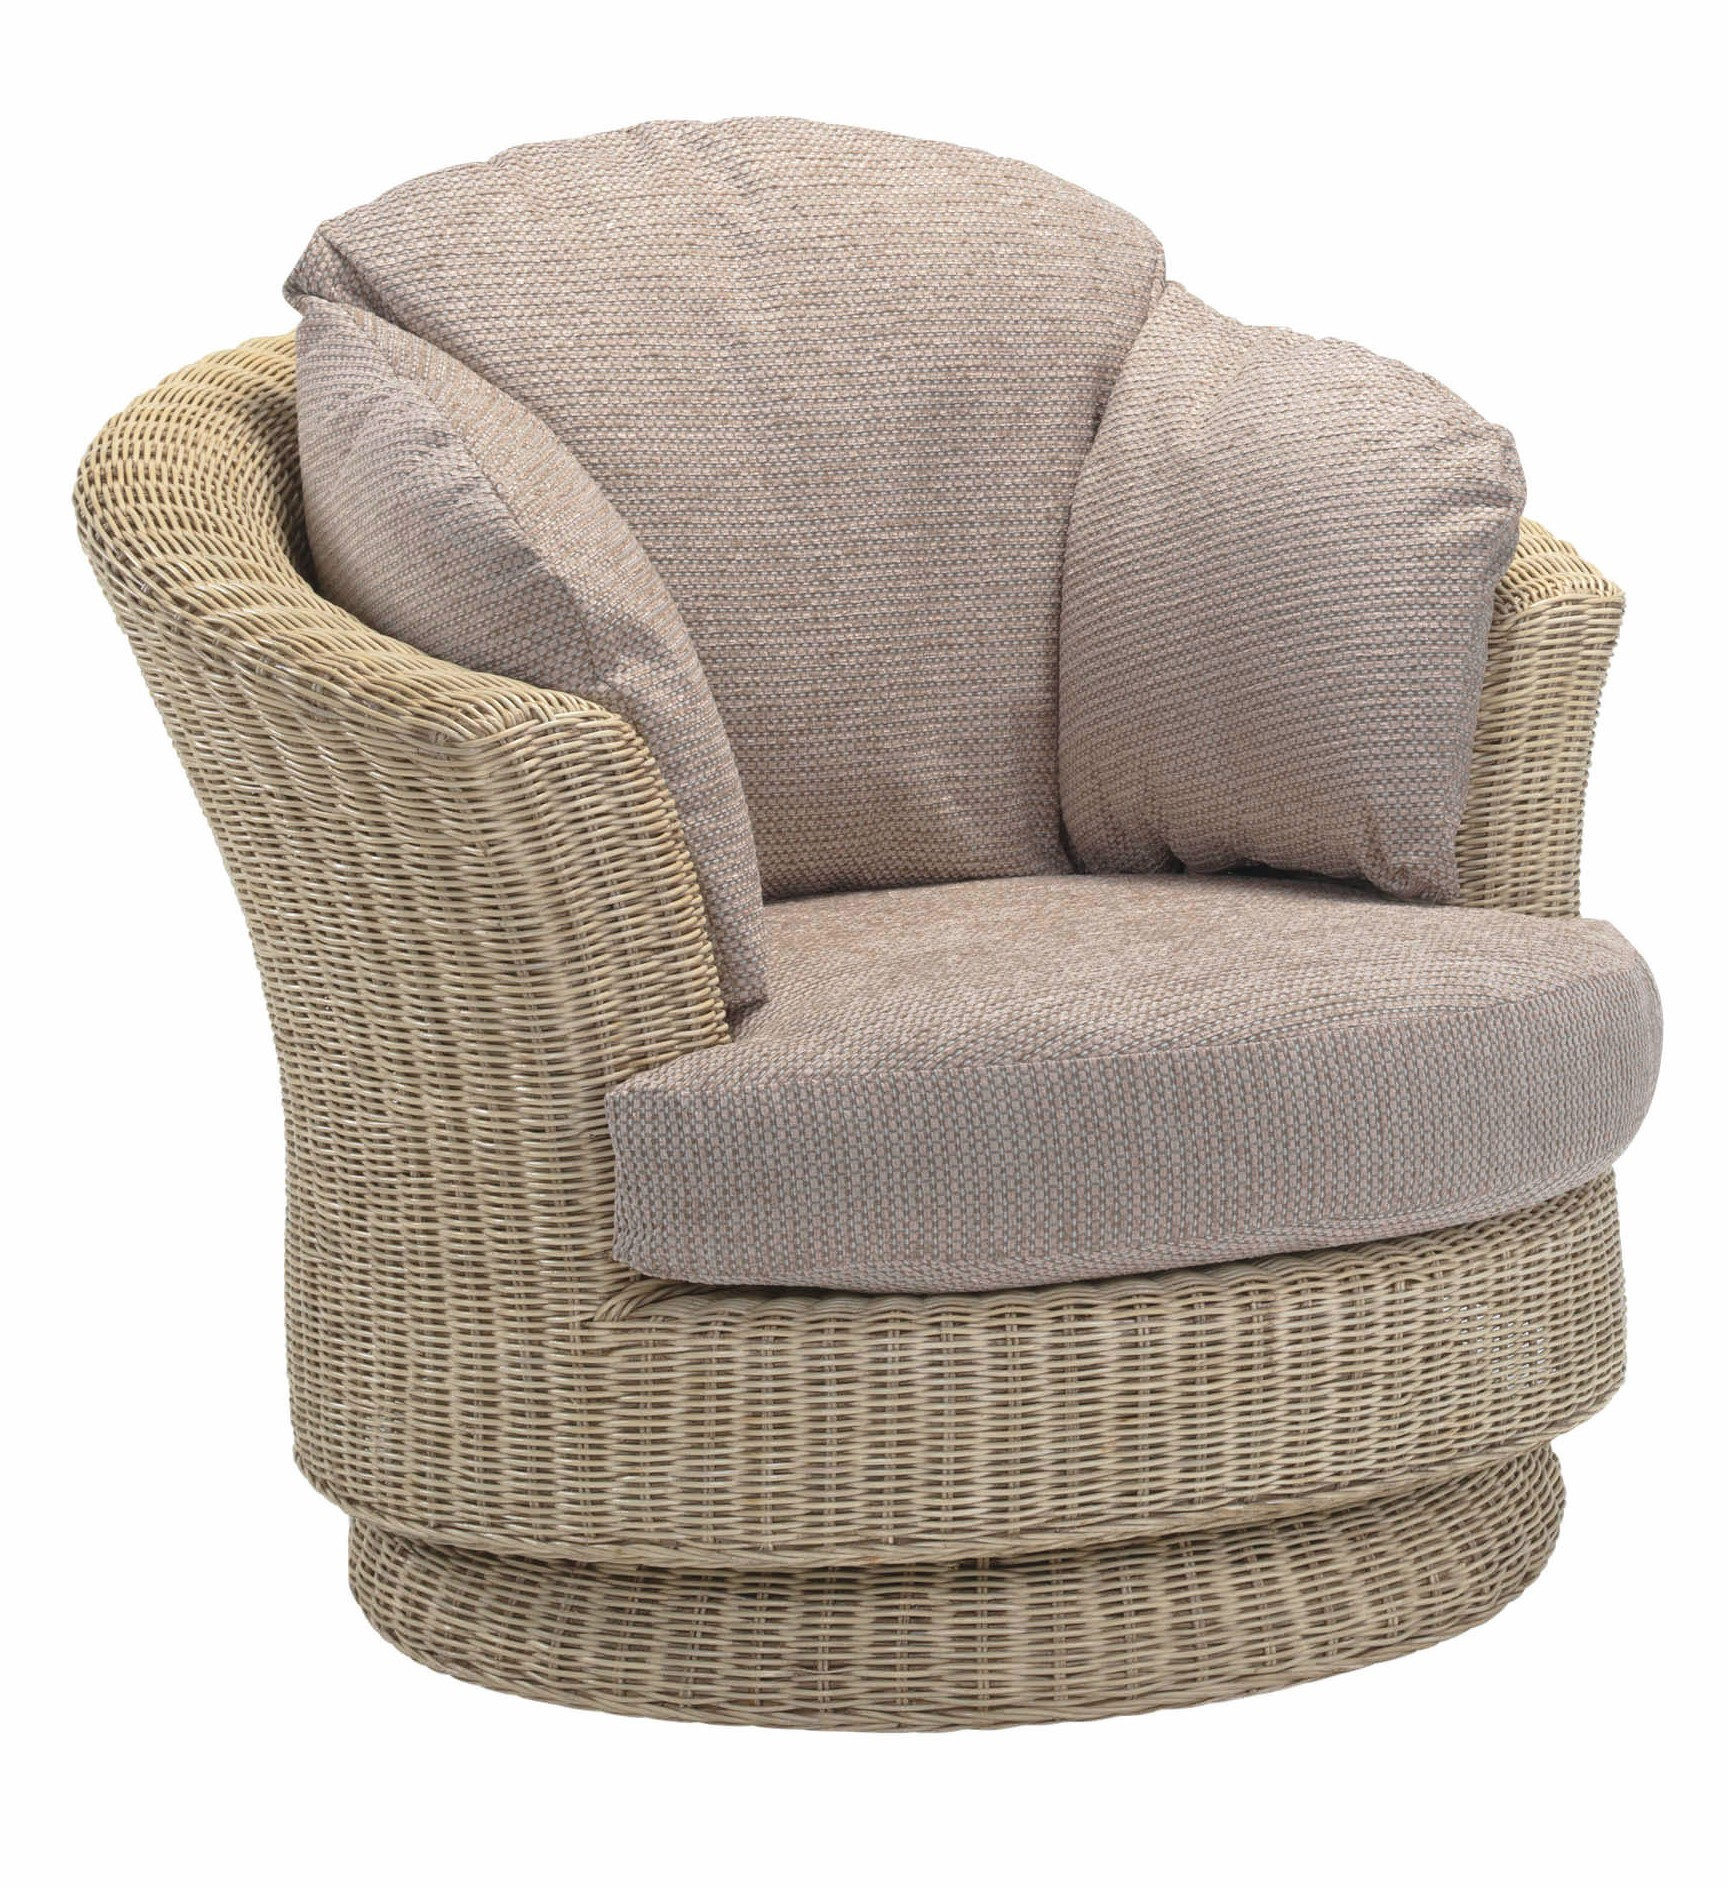 Desser Corsica Lyon swivel Chair sold at Highgate Furniture Southend On Sea